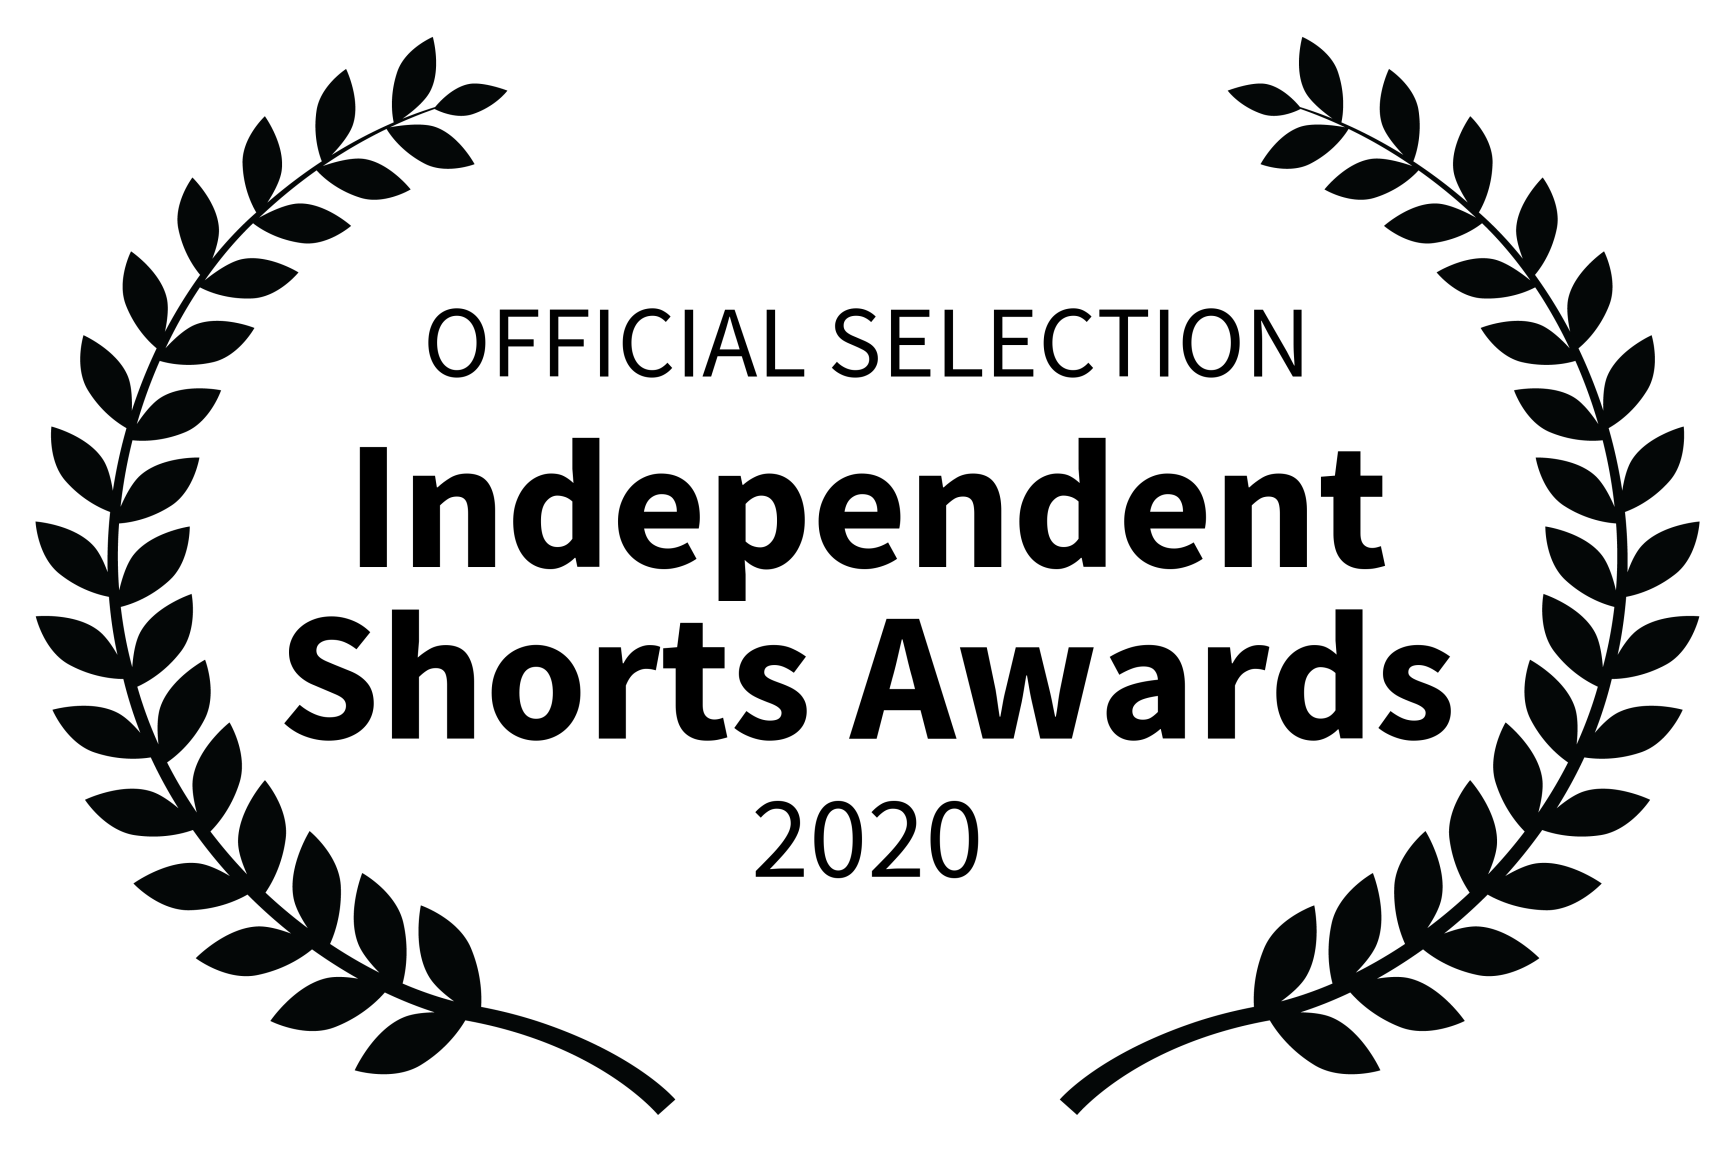 OFFICIAL SELECTION - Independent Shorts Awards - 2020 (1)